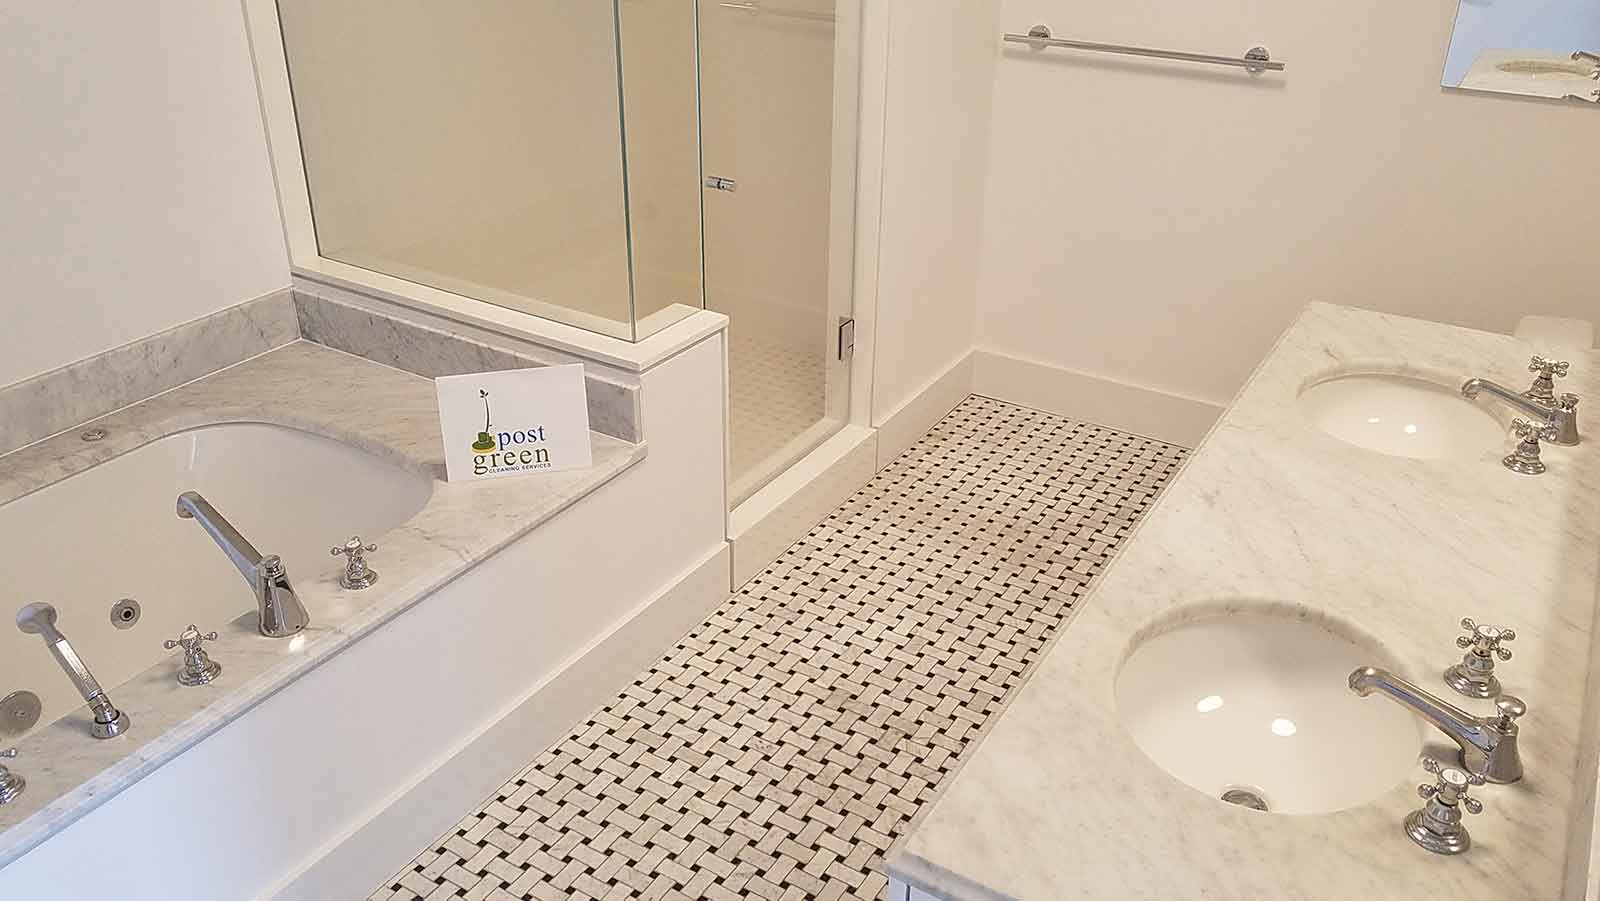 Marble bathroom vanity and tiled floor after post-construction cleaning.